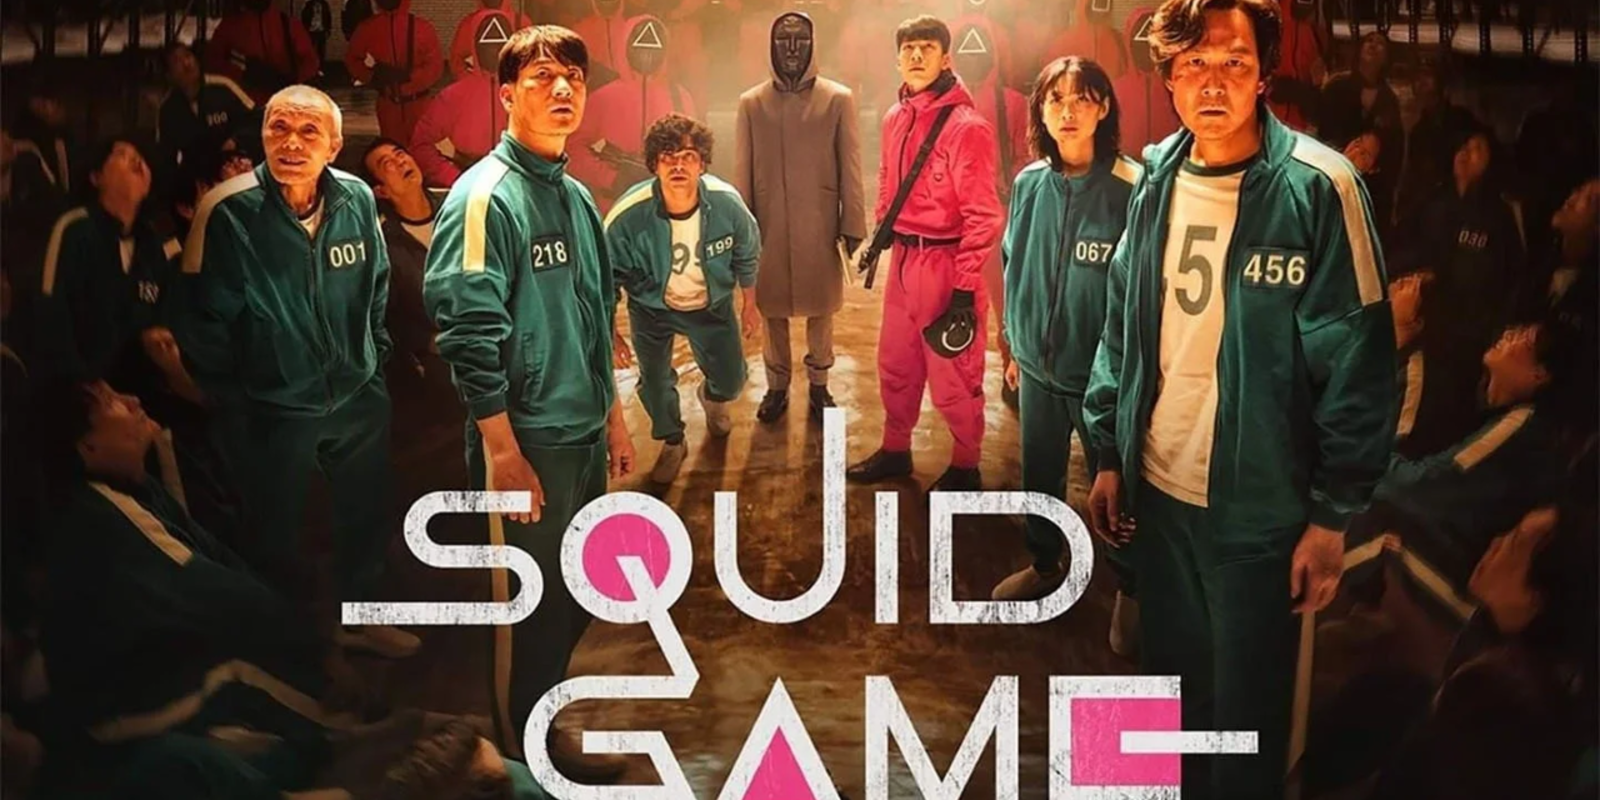 Netflix's Squid Game gets brands excited with their own marketing games